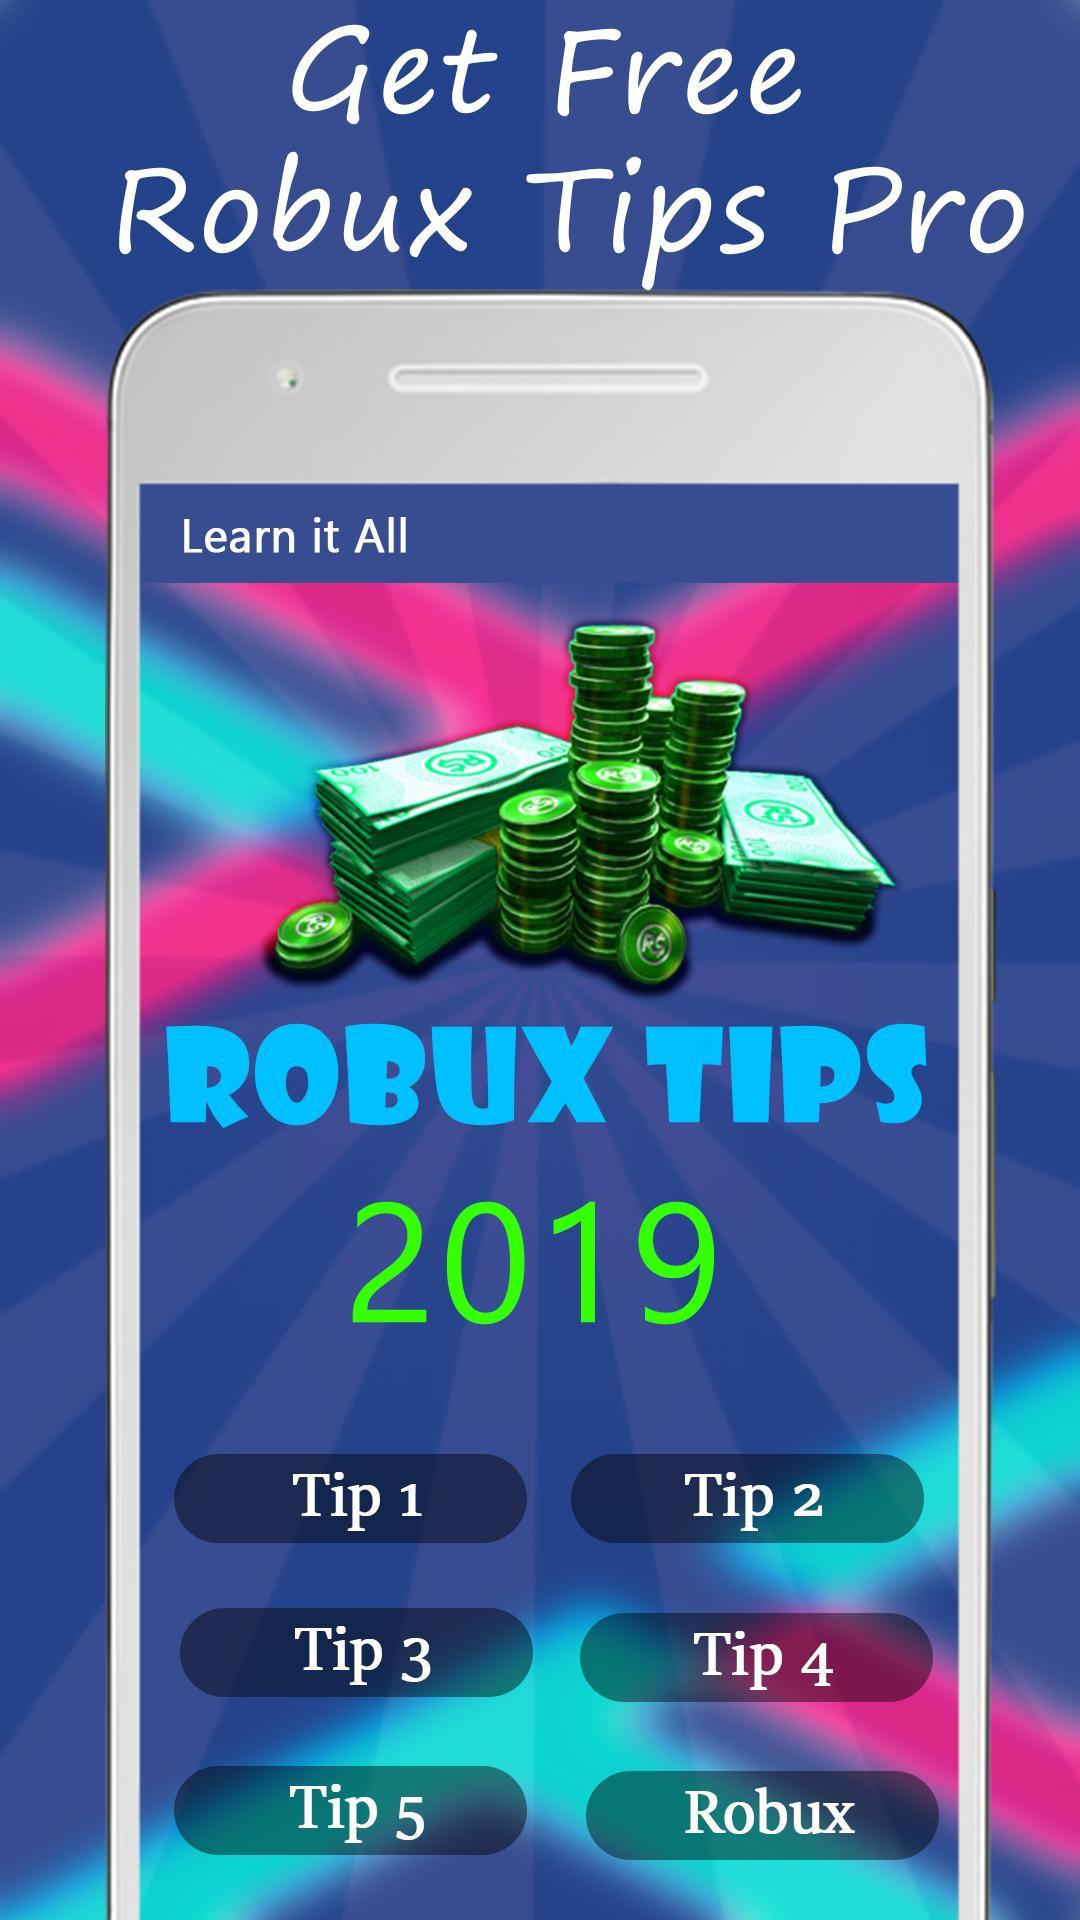 Roblox Catalog Hacked Free Apk How To Get Robux Without - Get New Free Tips Robux For Roblox Guide 2k19 For Android